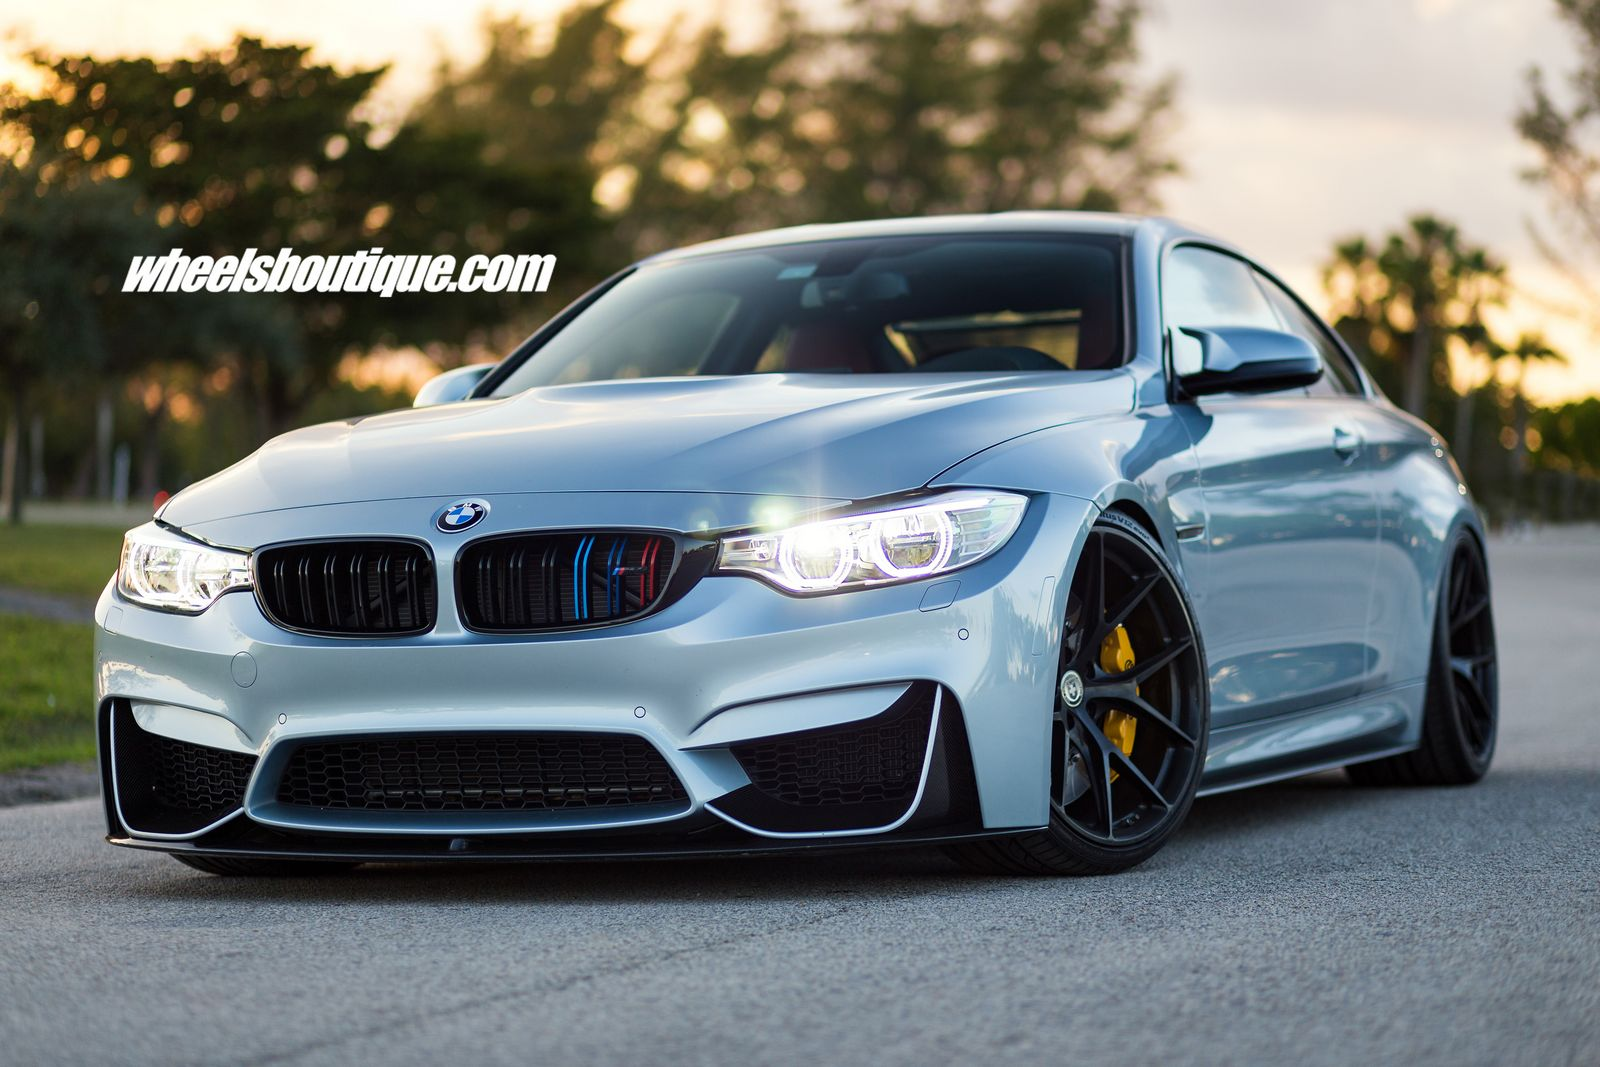 bmw m4 tries on matte black wheels on a lowered body carscoops. Black Bedroom Furniture Sets. Home Design Ideas